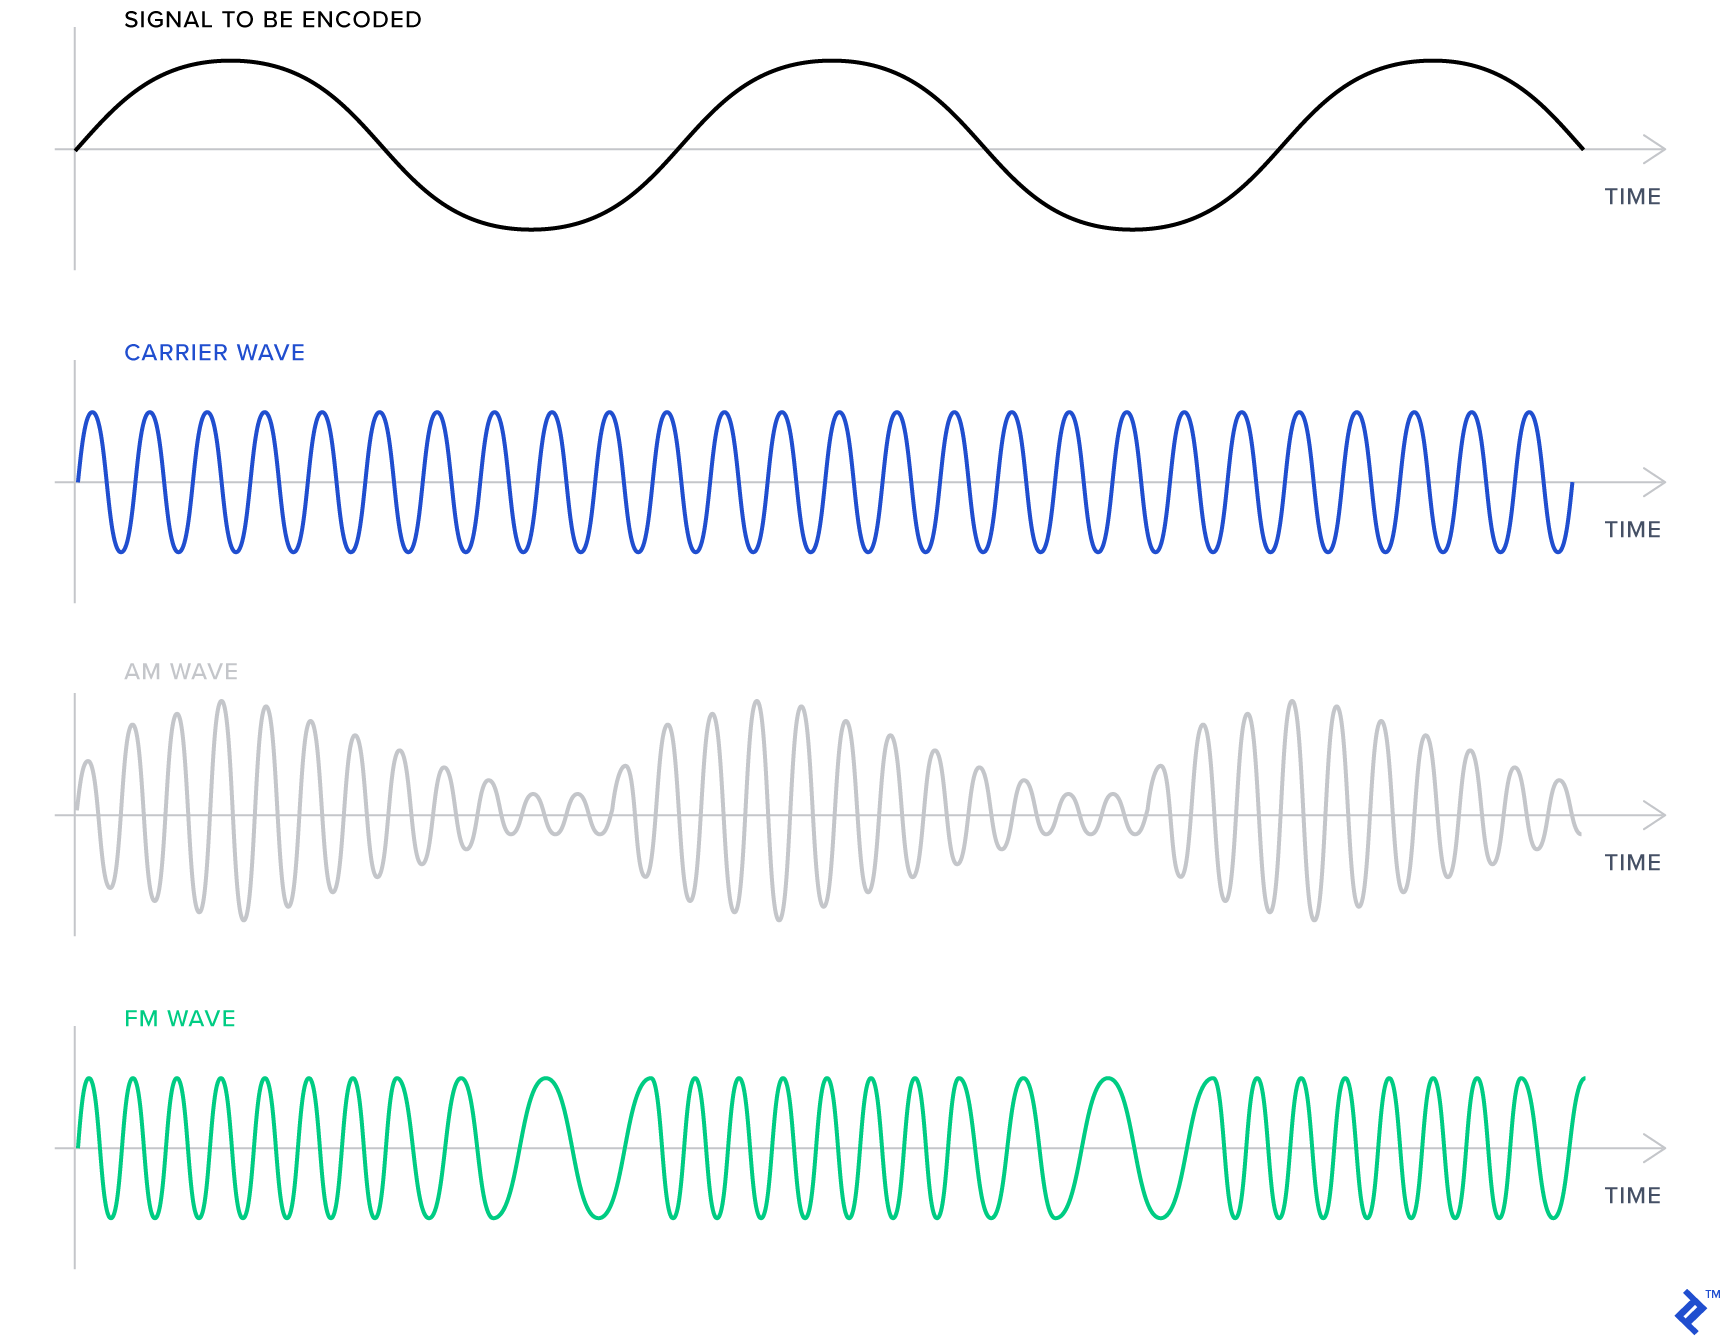 An illustration showing the same information signal encoded using FM and AM techniques